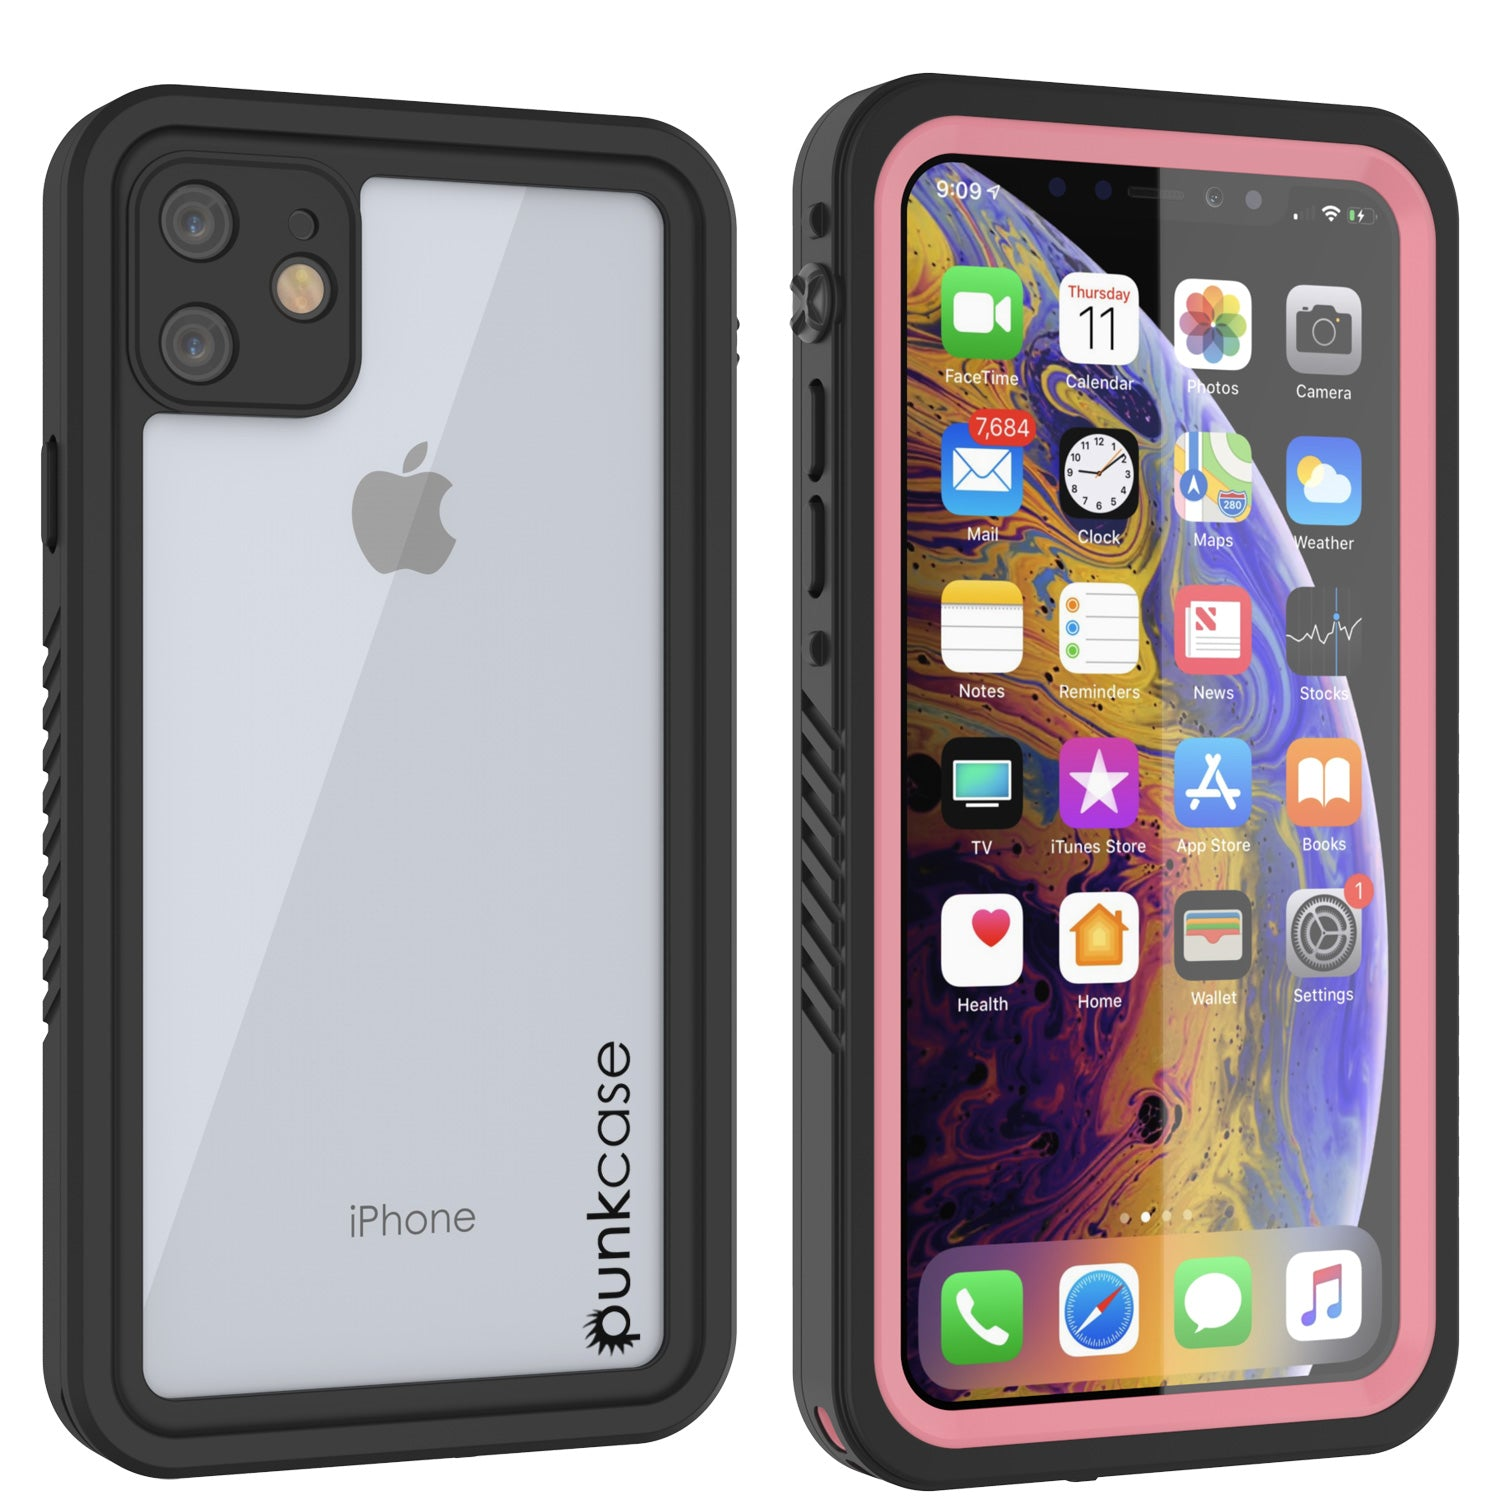 iPhone 11 Waterproof Case, Punkcase [Extreme Series] Armor Cover W/ Built In Screen Protector [Pink]